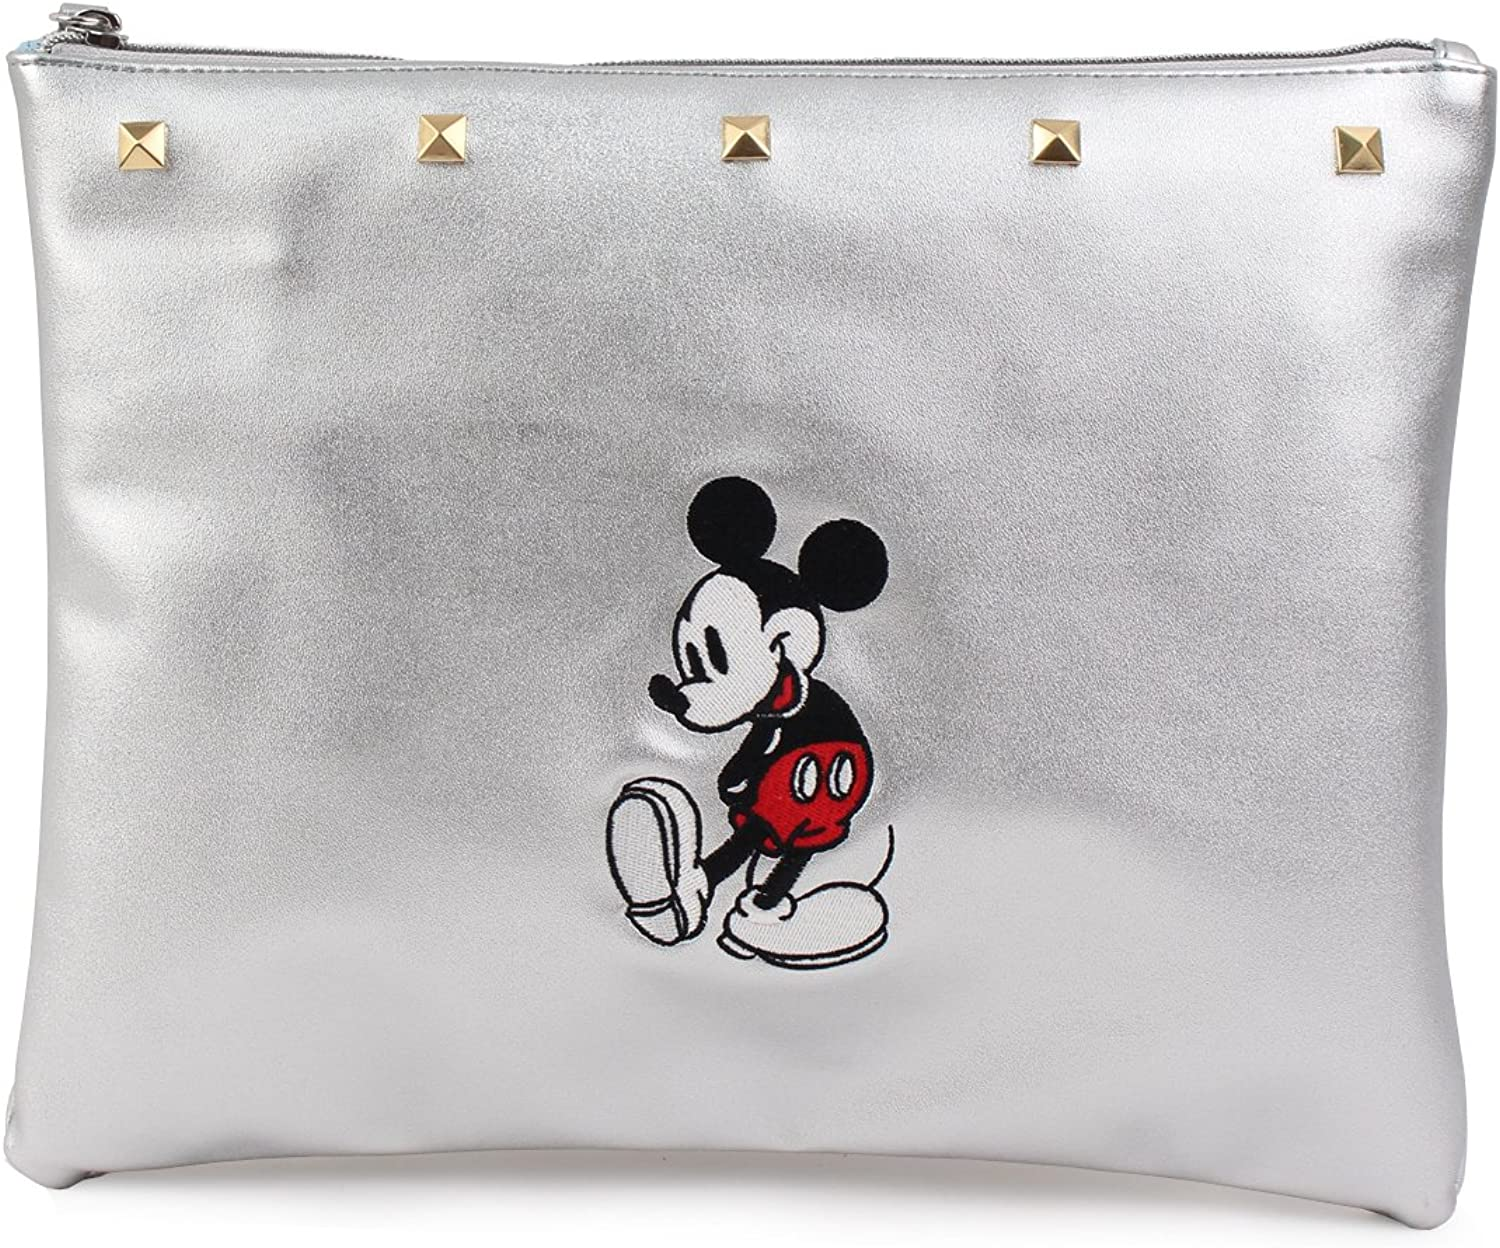 Disney Mickey Mouse Smile Clutch PU Leather Silver